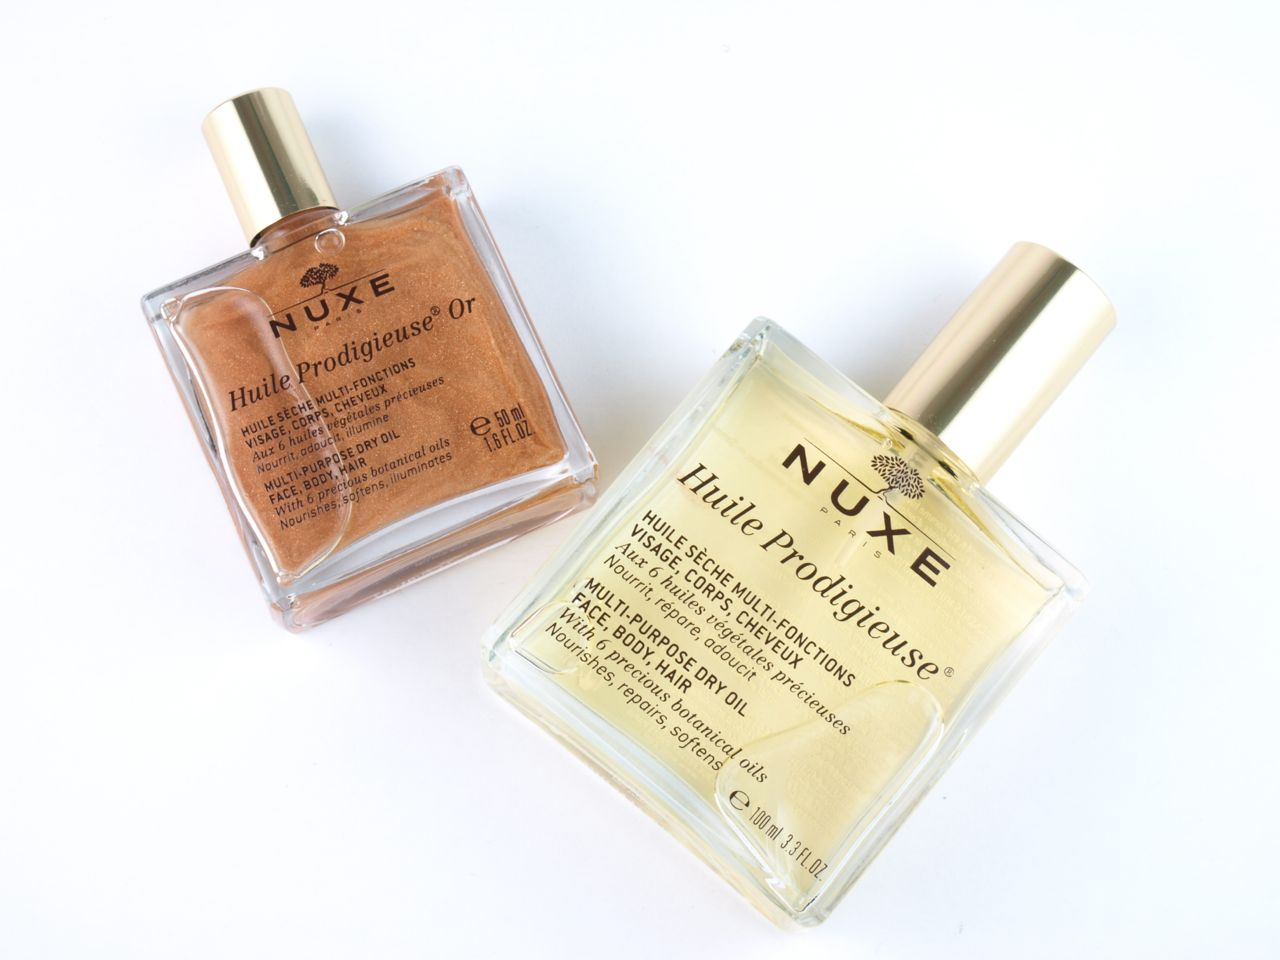 Nuxe Huile Prodigieuse & Huile Prodigieuse Or Multi-Purpose Dry Oil for Face, Body & Hair: Review